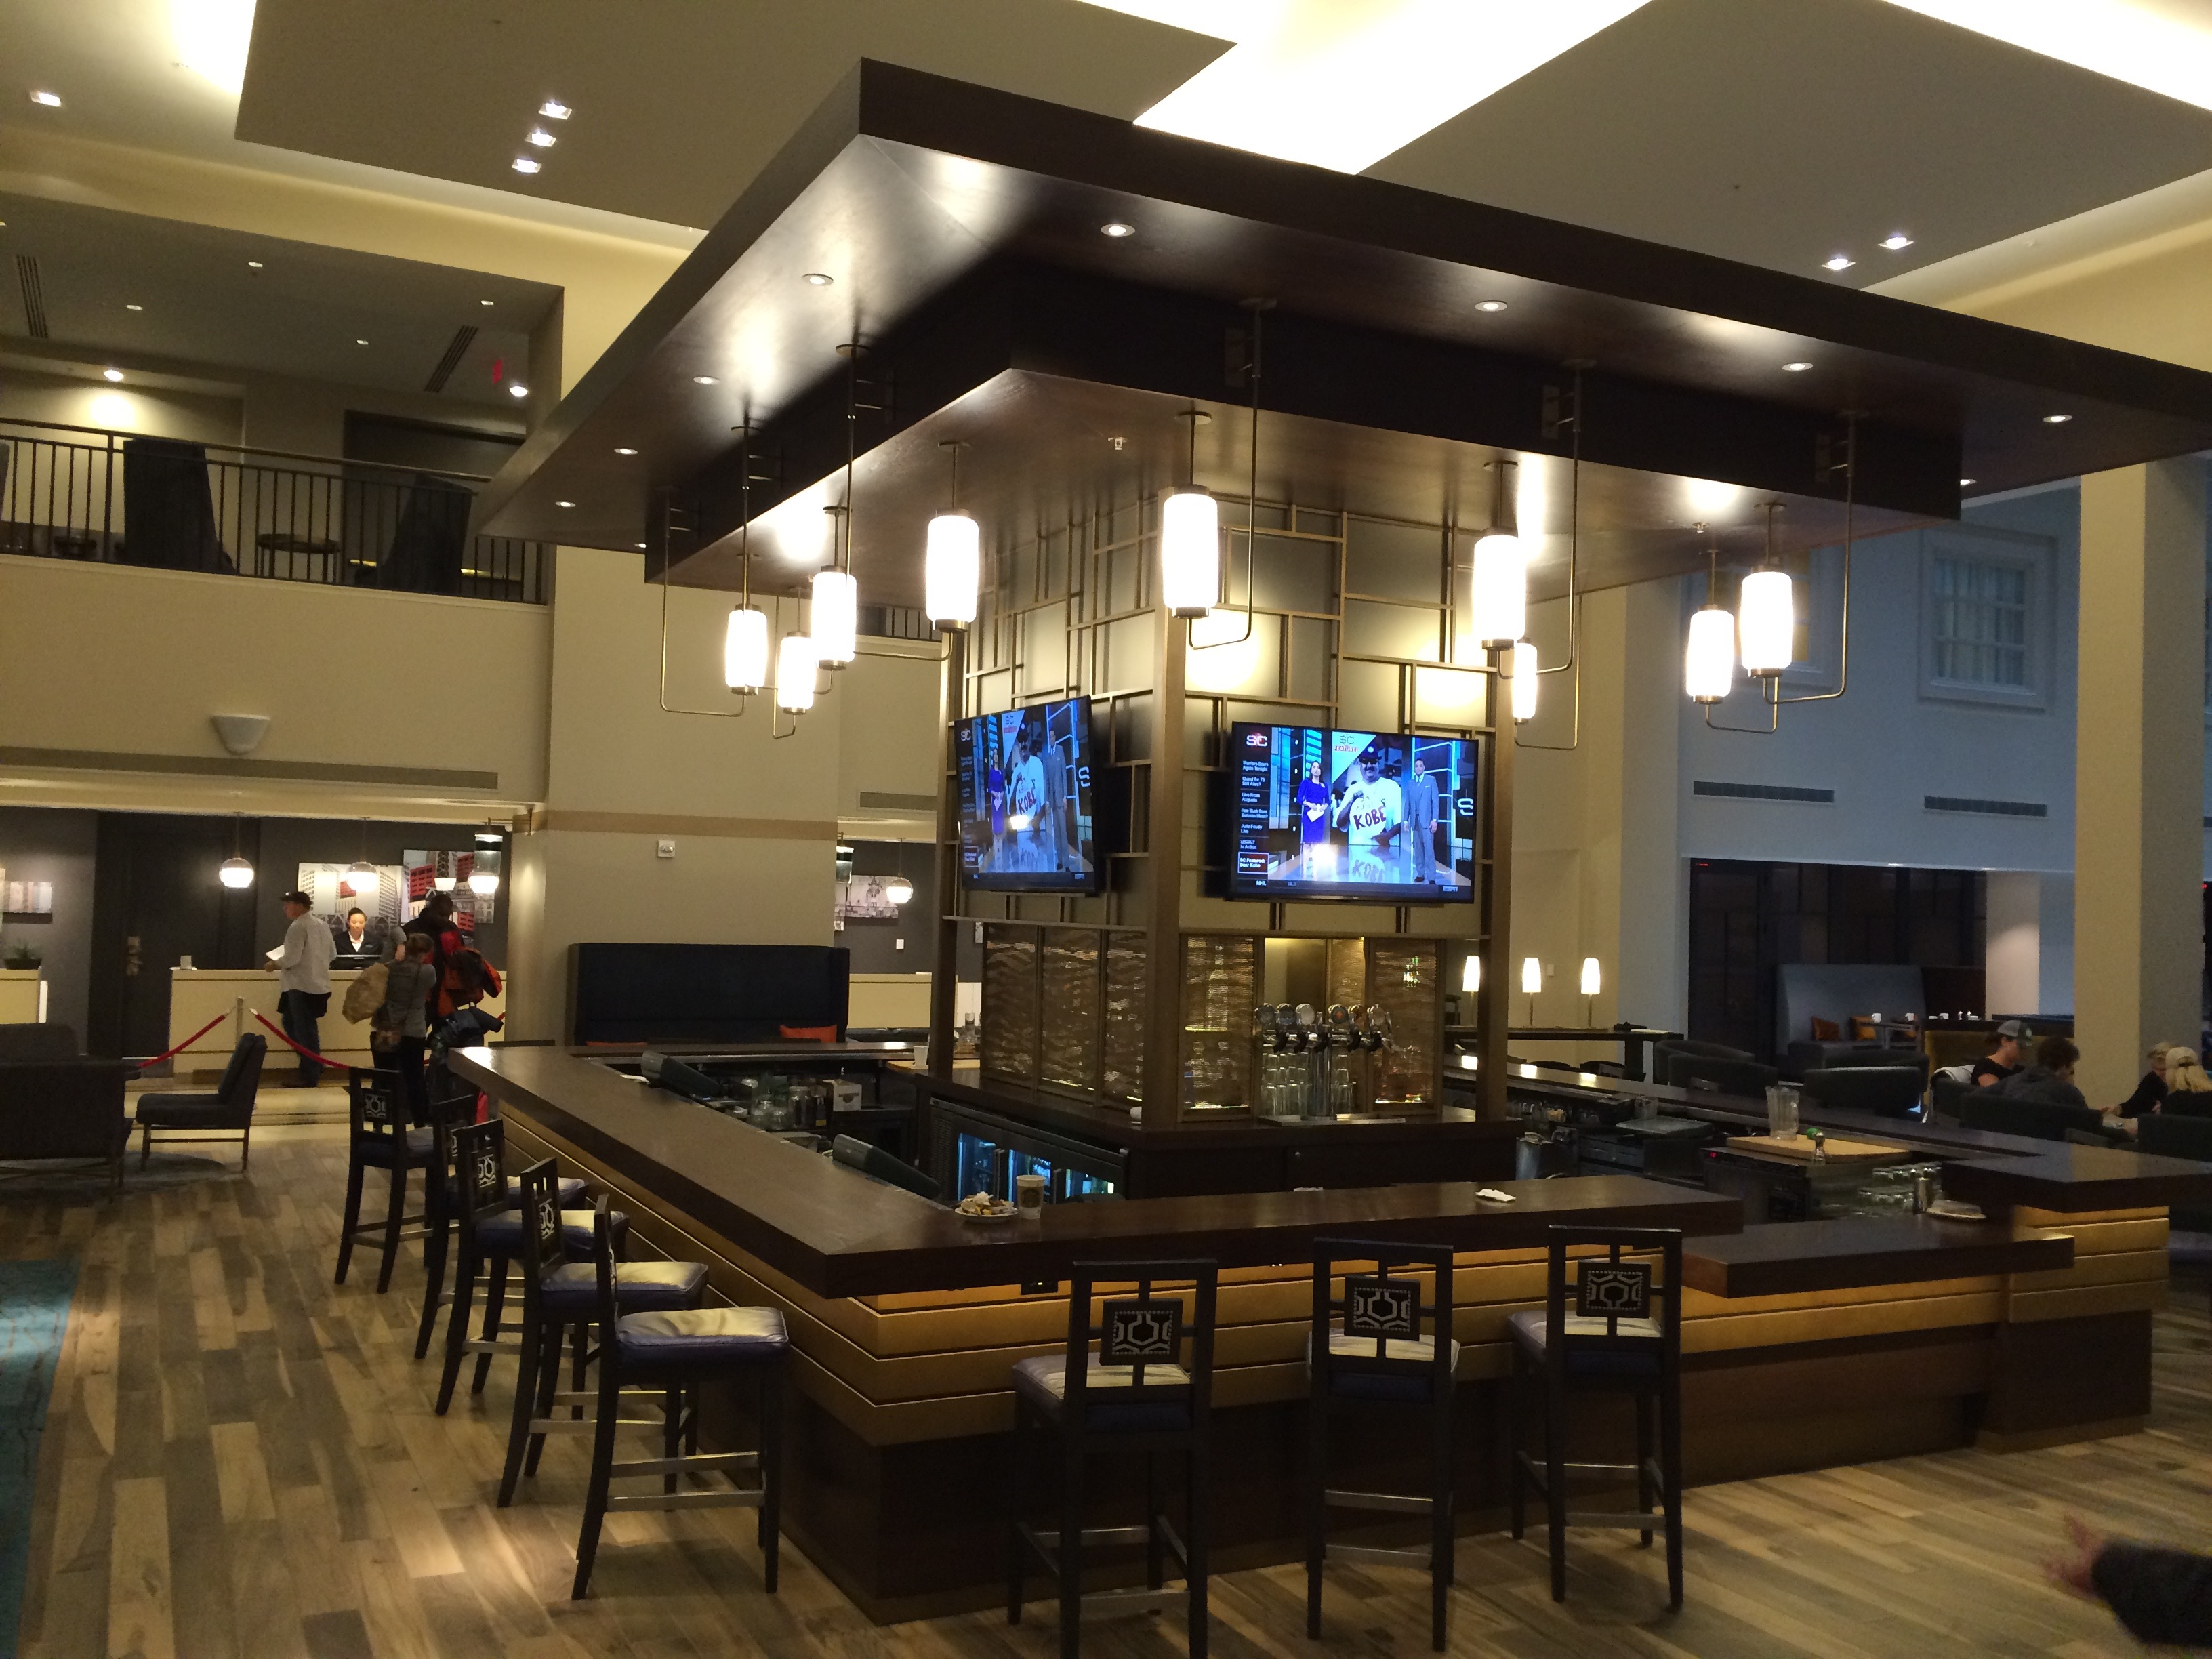 Lobby Bar in St. Louis Grand Marriott by Spinach Tiger